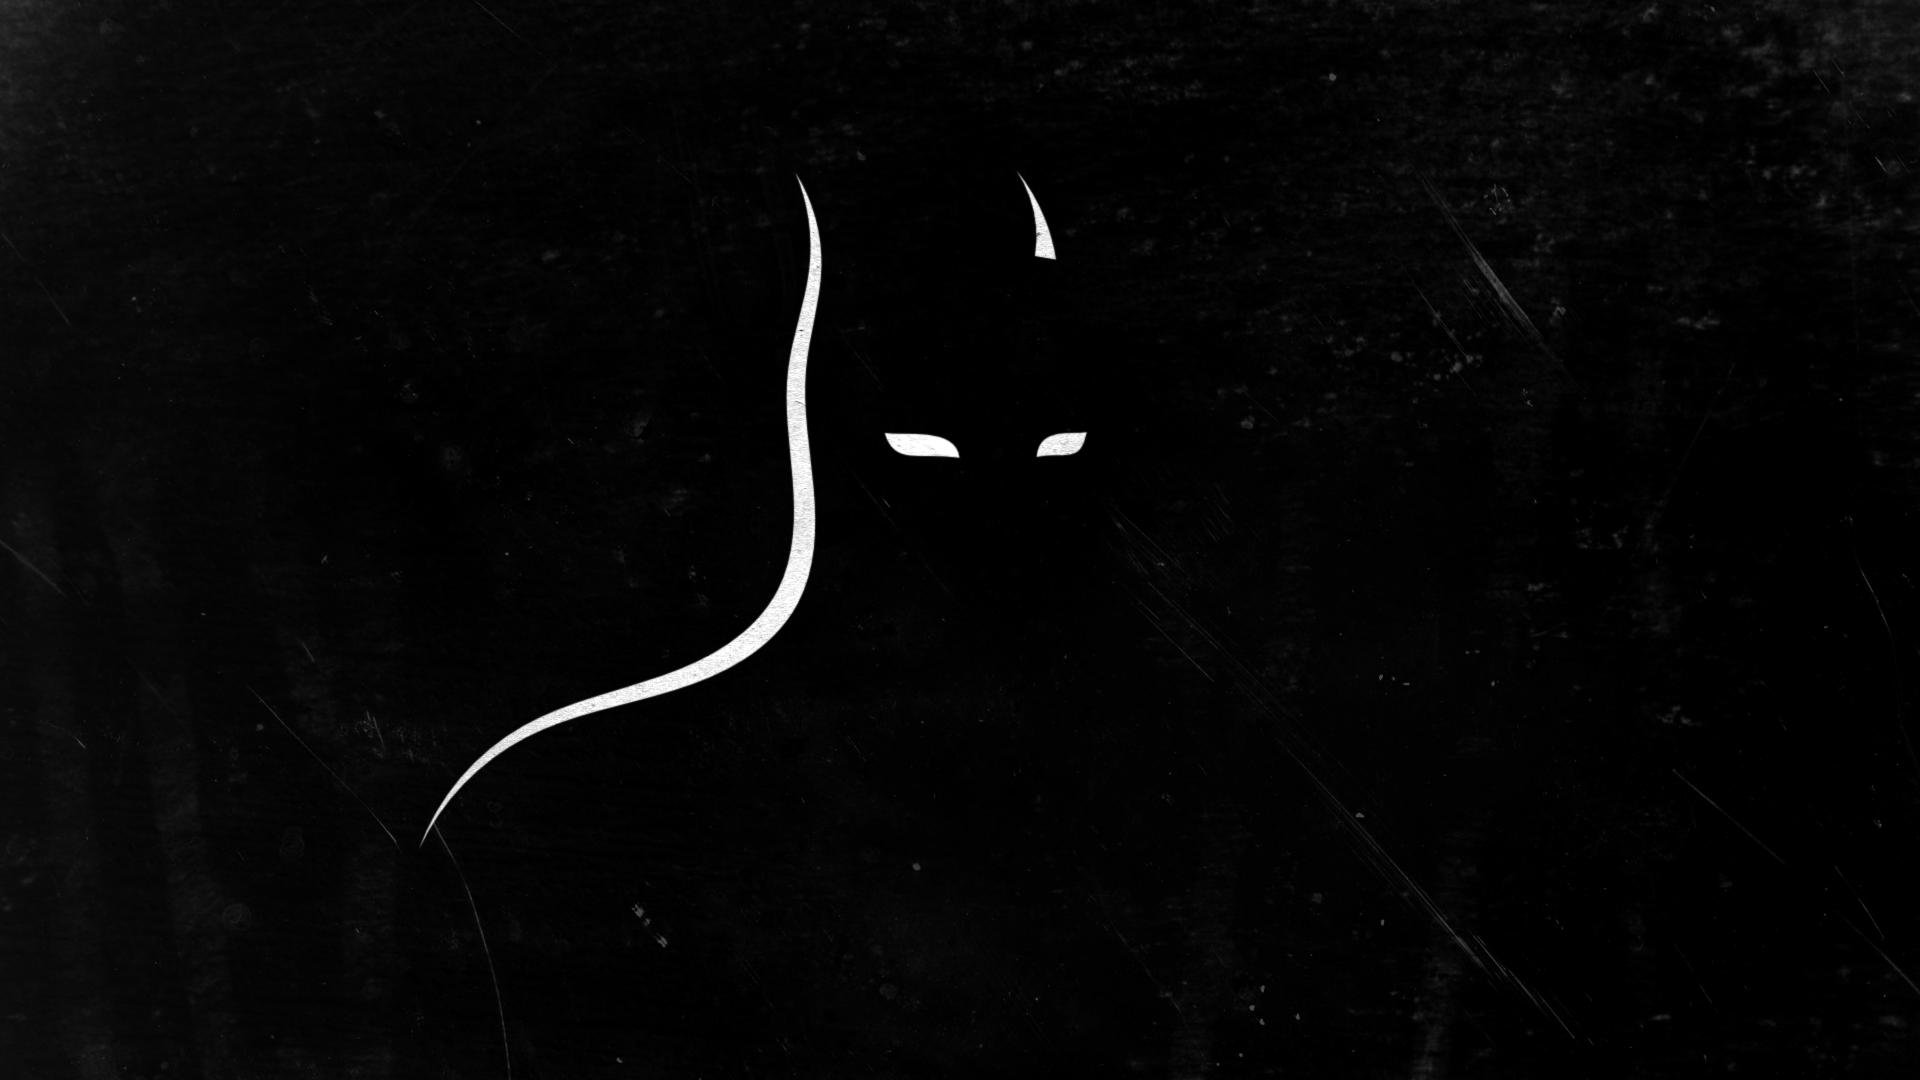 Batman IPhone Wallpaper HD PixelsTalk Download Free Bike Hd 1920x1080